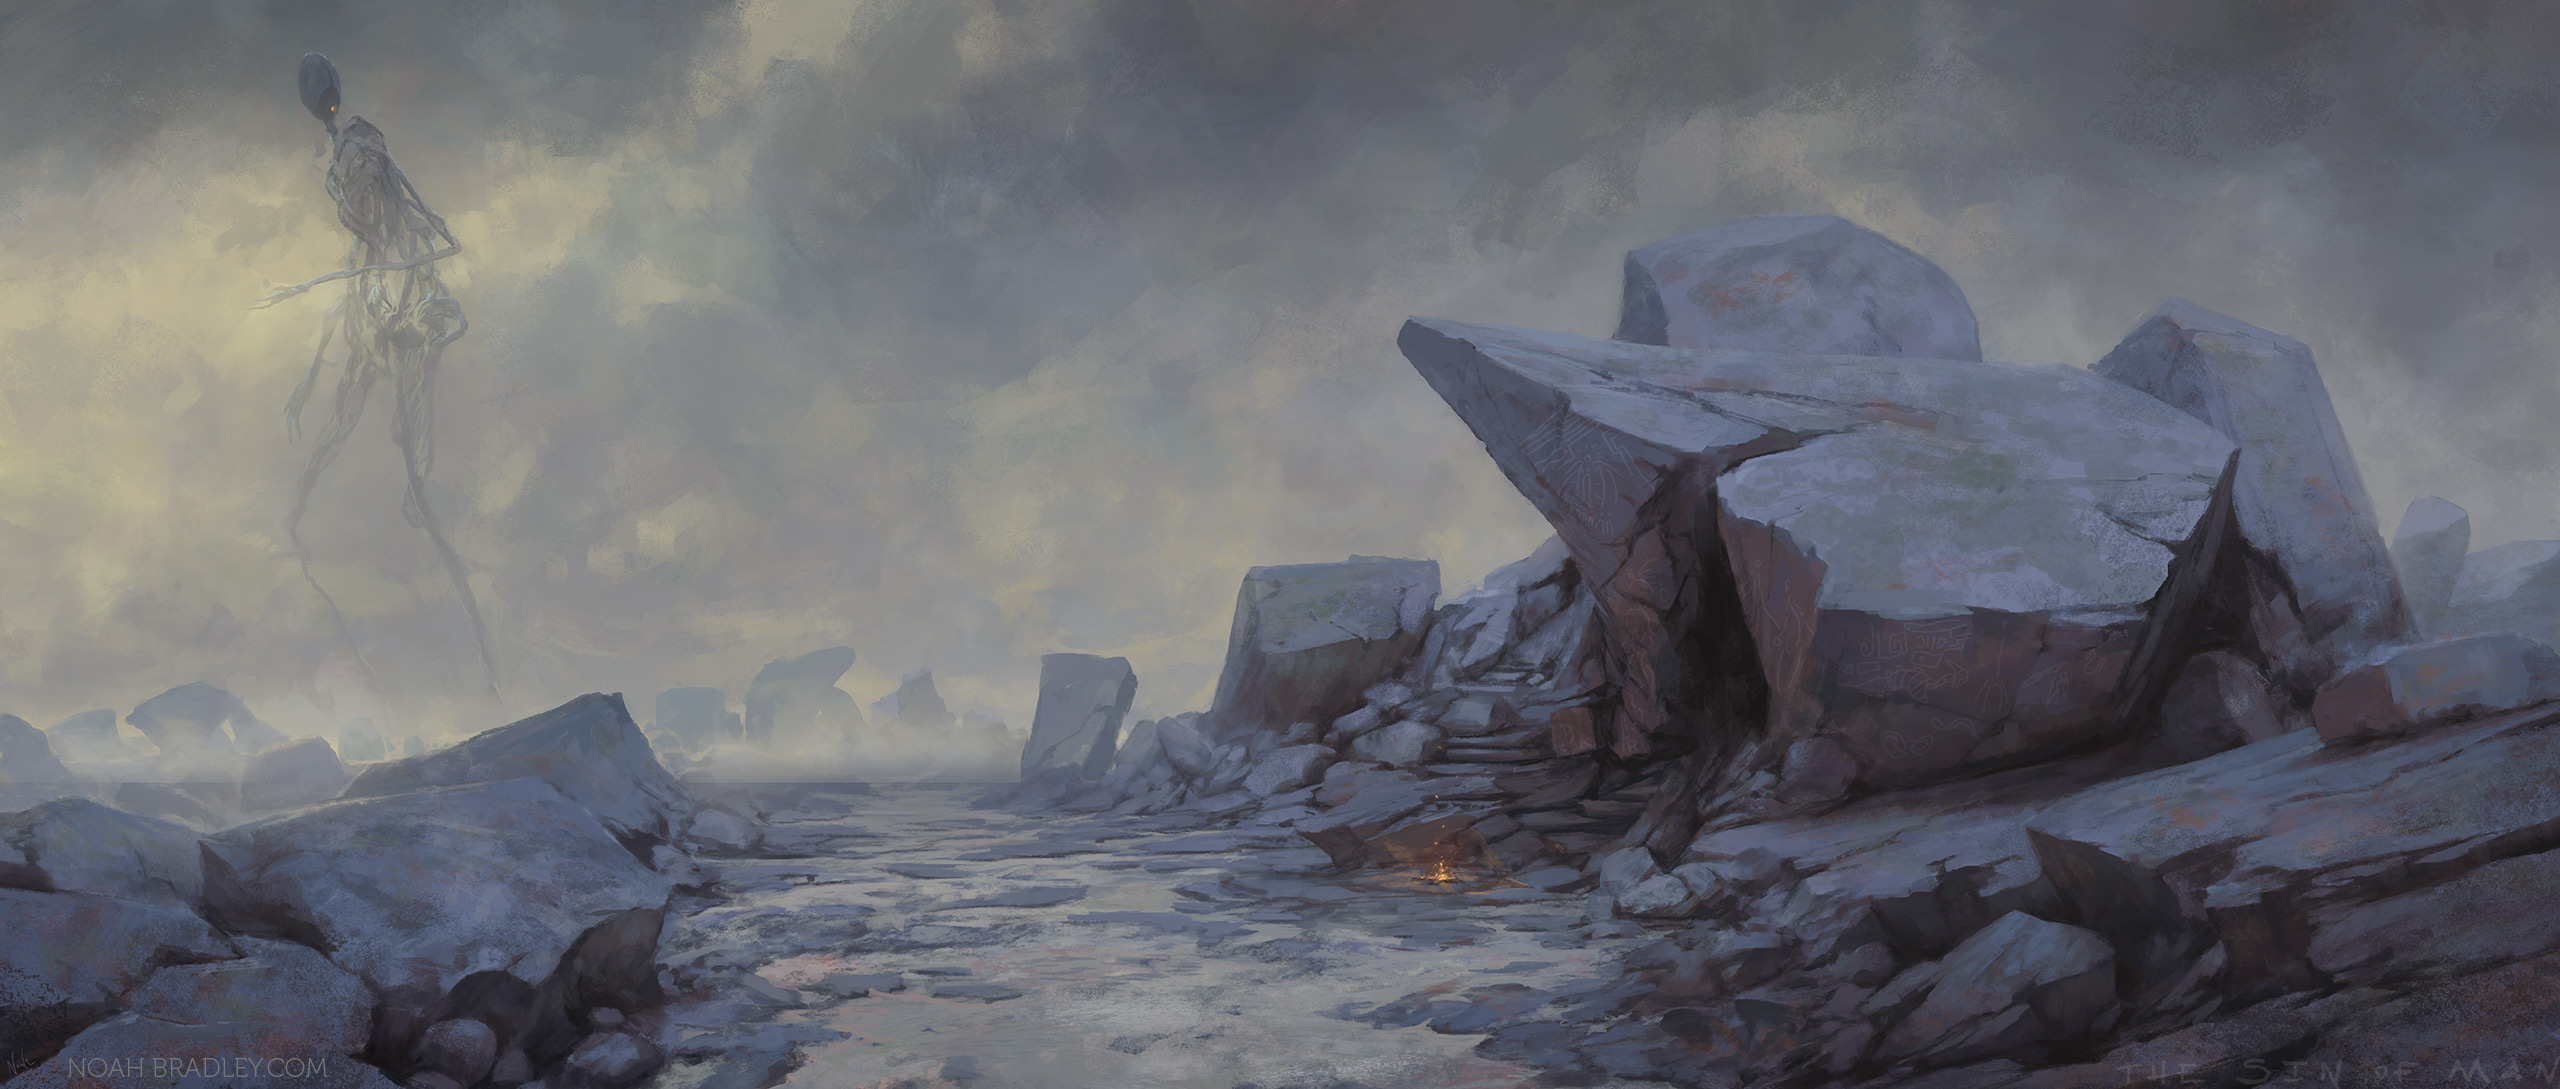 Noah-Bradley_The-Sin-of-Man_The-Last-Whisper_highres